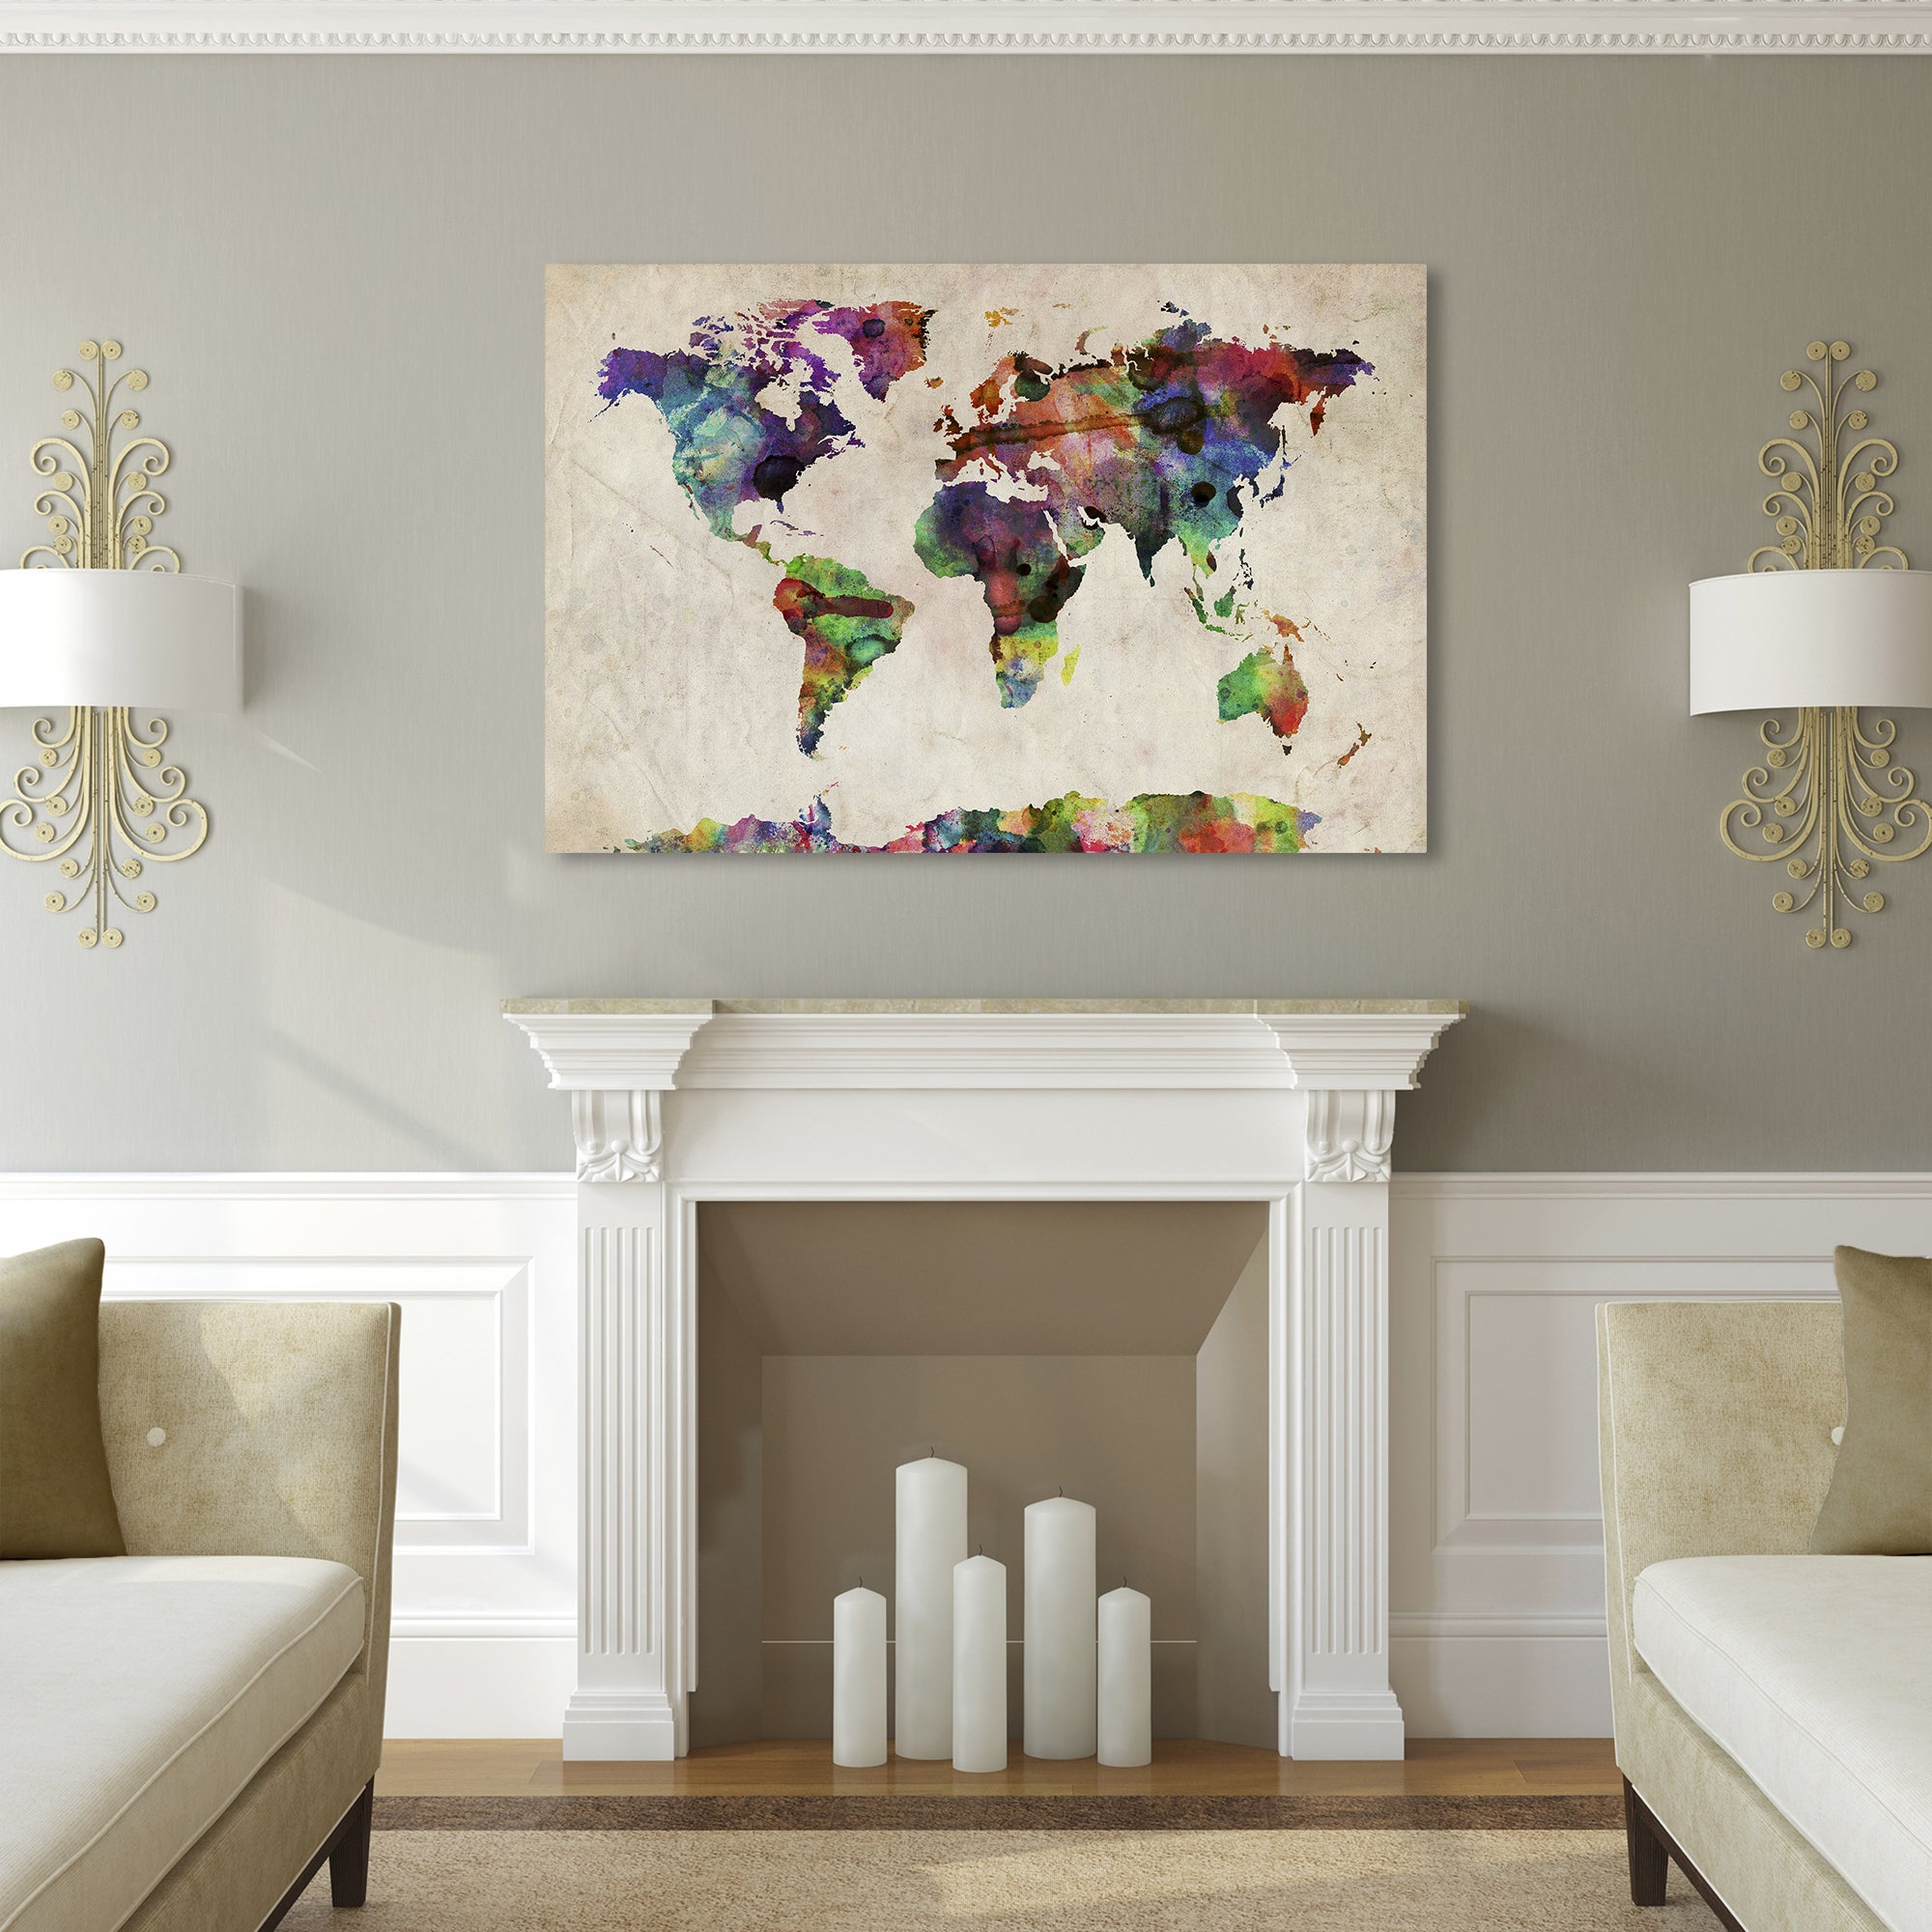 Shop michael tompsett urban watercolor world map canvas art free shop michael tompsett urban watercolor world map canvas art free shipping on orders over 45 overstock 7569570 gumiabroncs